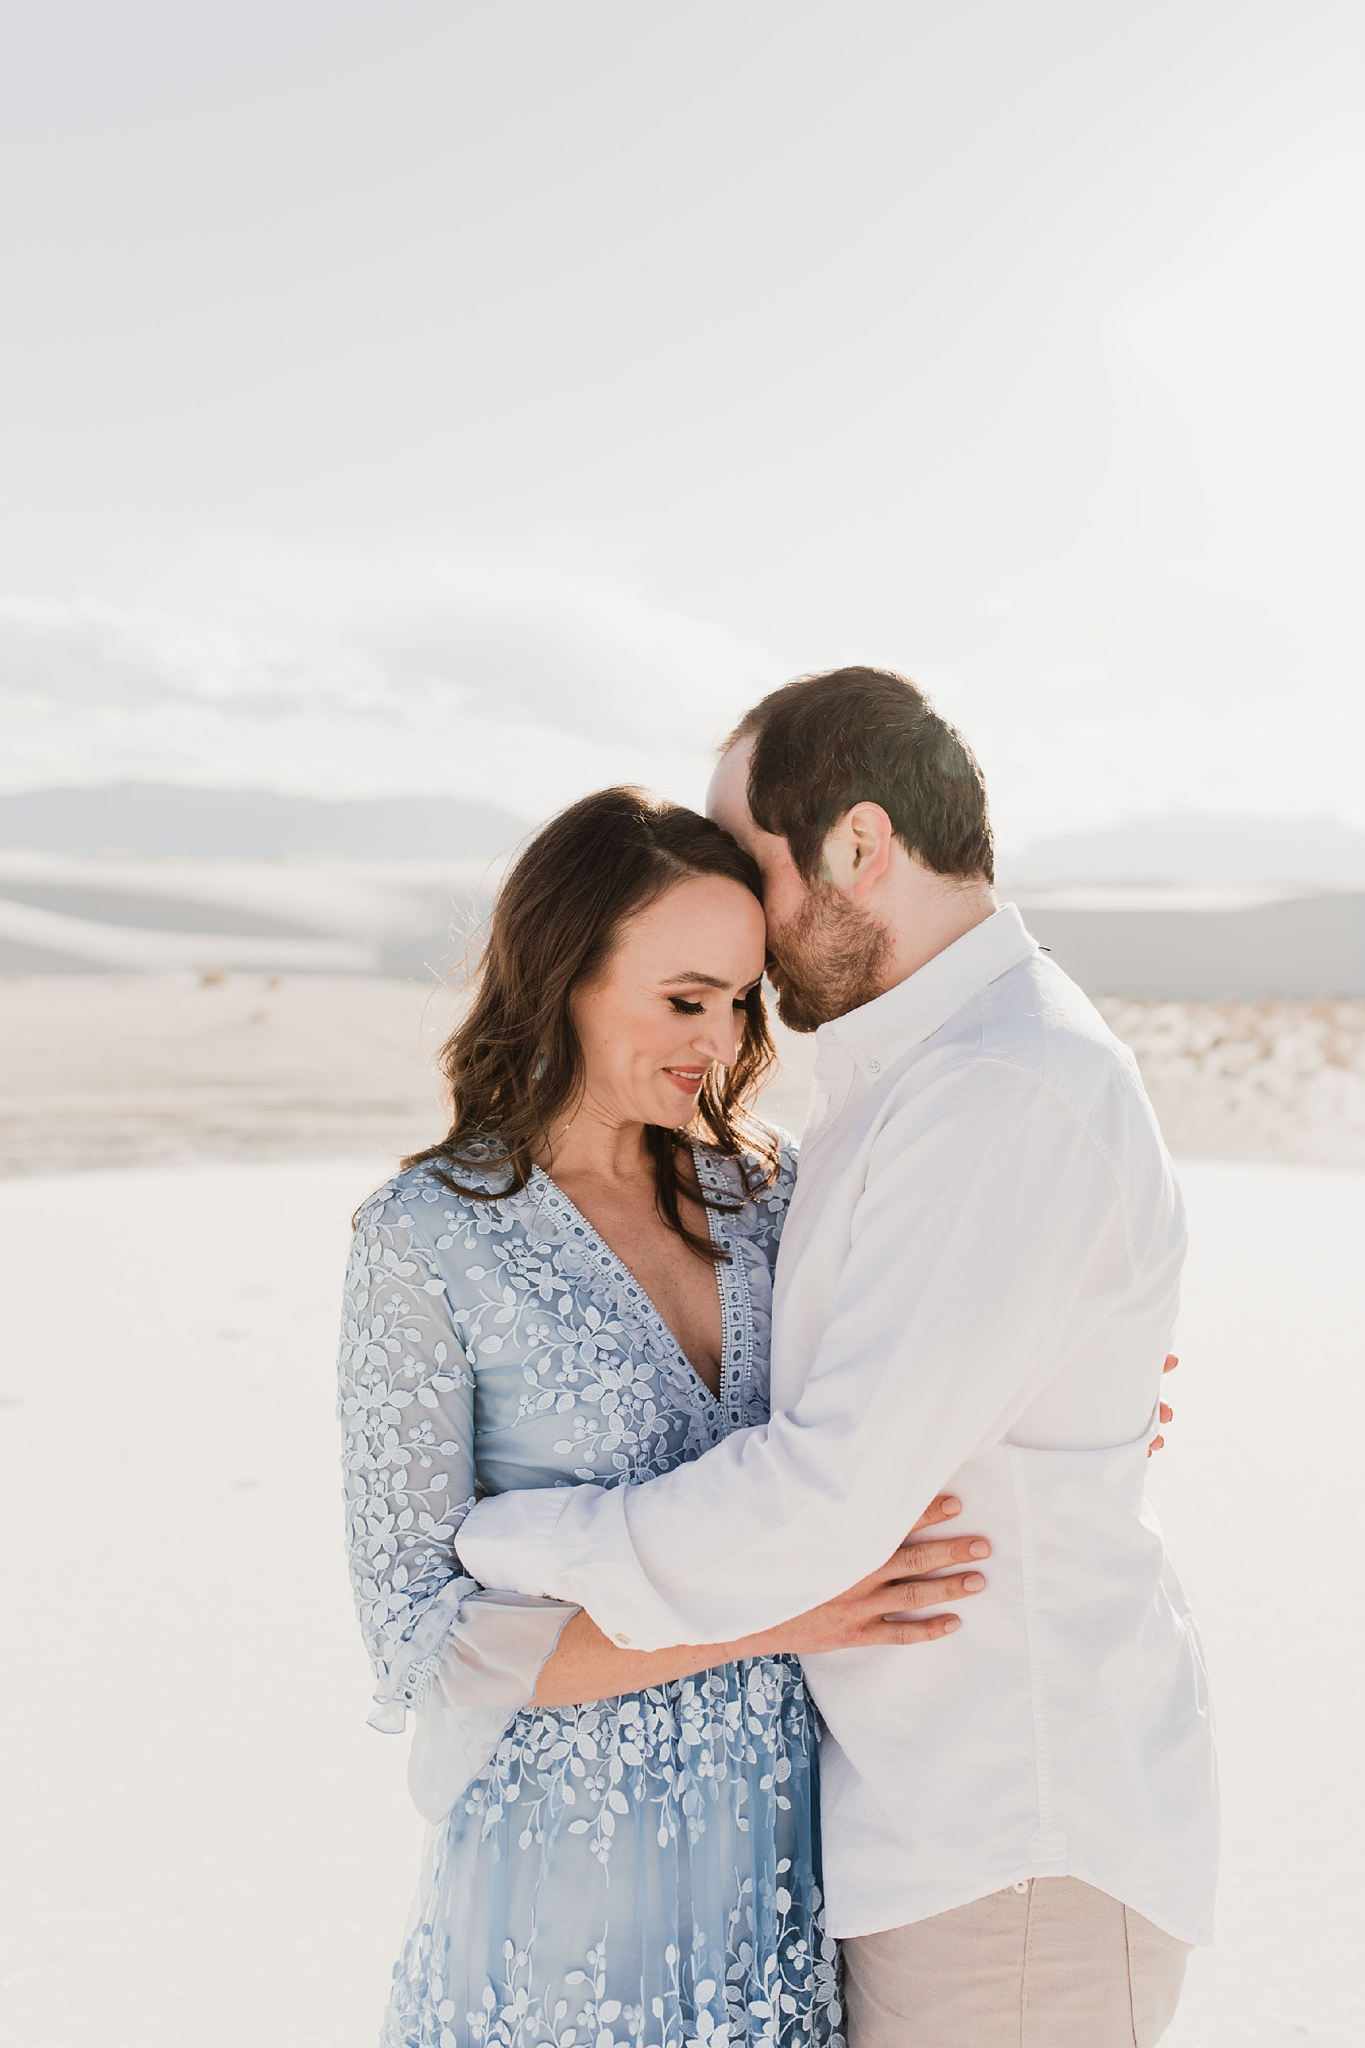 Alicia+lucia+photography+-+albuquerque+wedding+photographer+-+santa+fe+wedding+photography+-+new+mexico+wedding+photographer+-+new+mexico+wedding+-+new+mexico+engagement+-+engagement+style+-+style+lookbook_0003.jpg